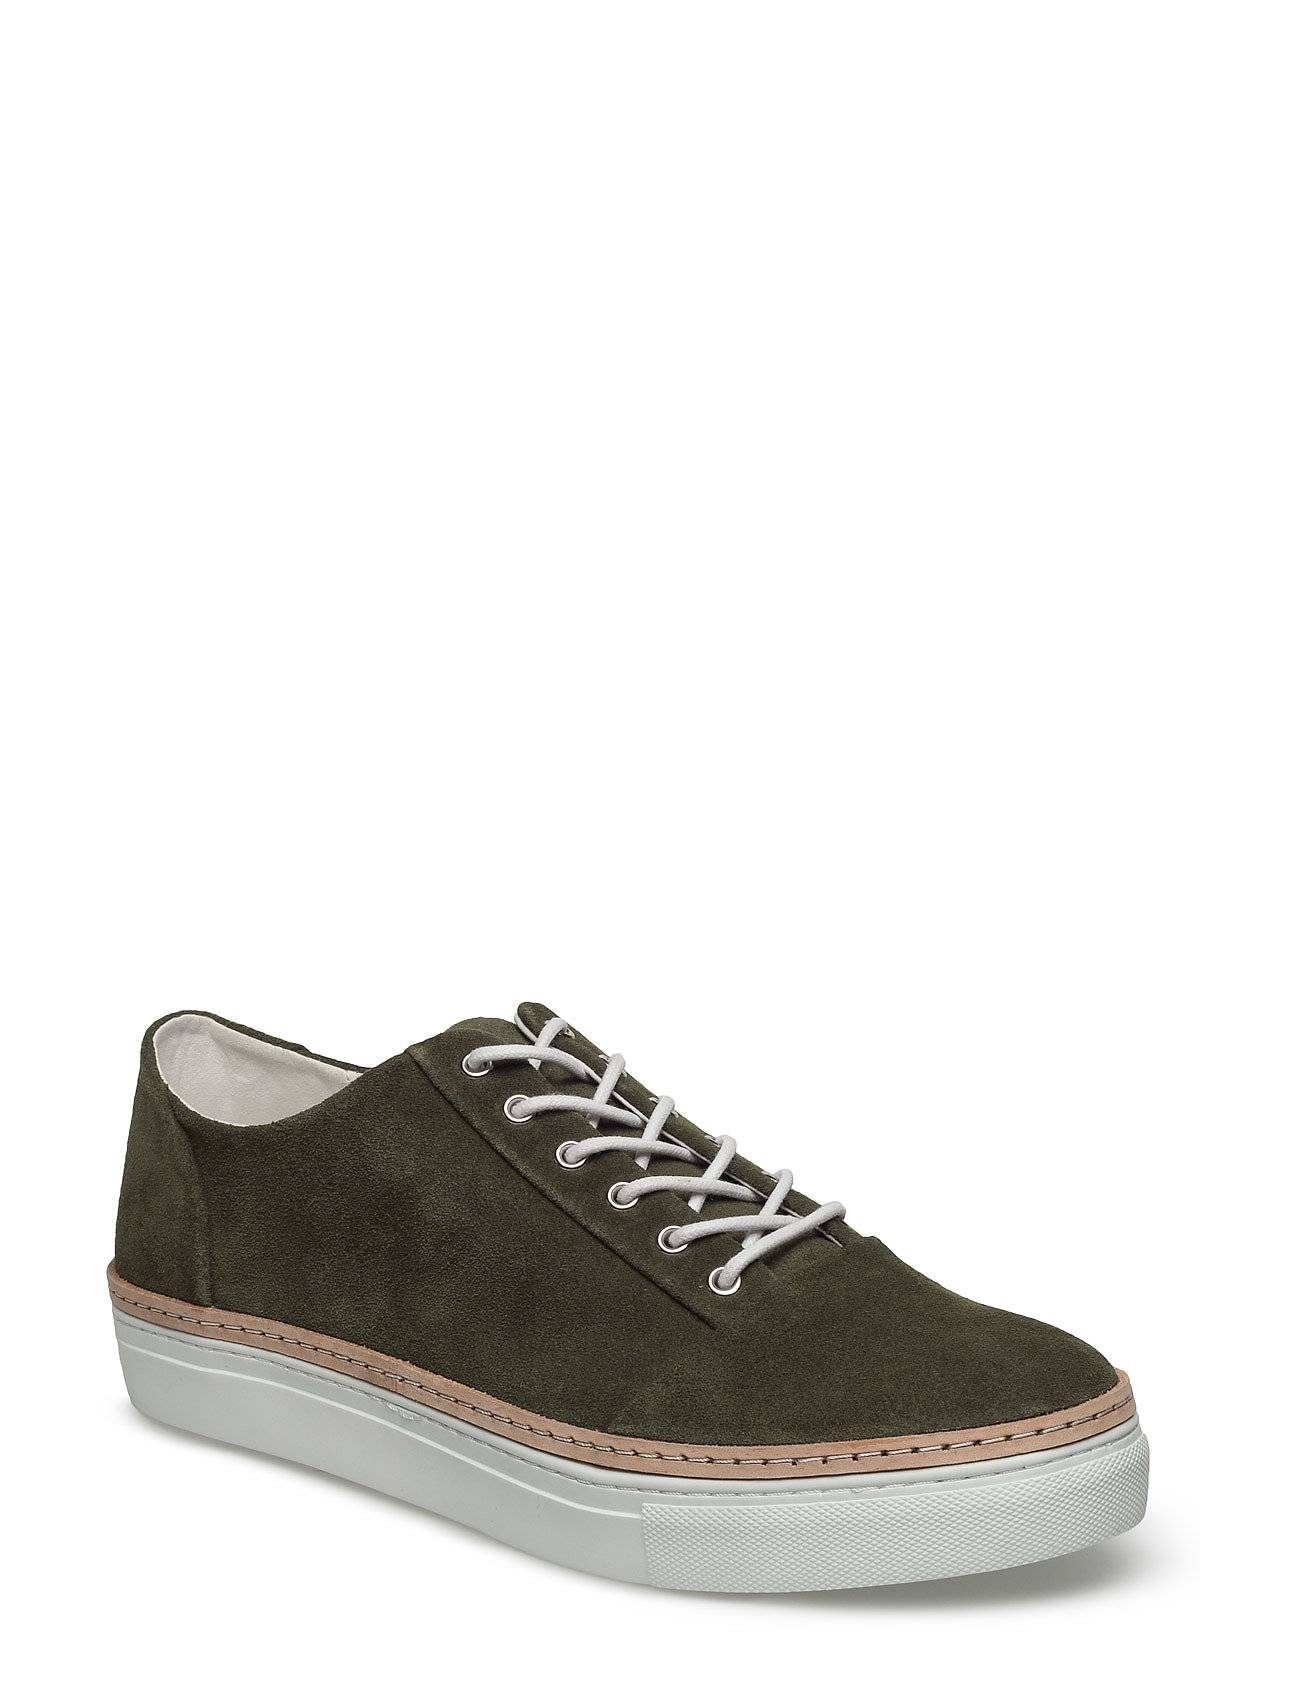 Whyred Zitor Suede